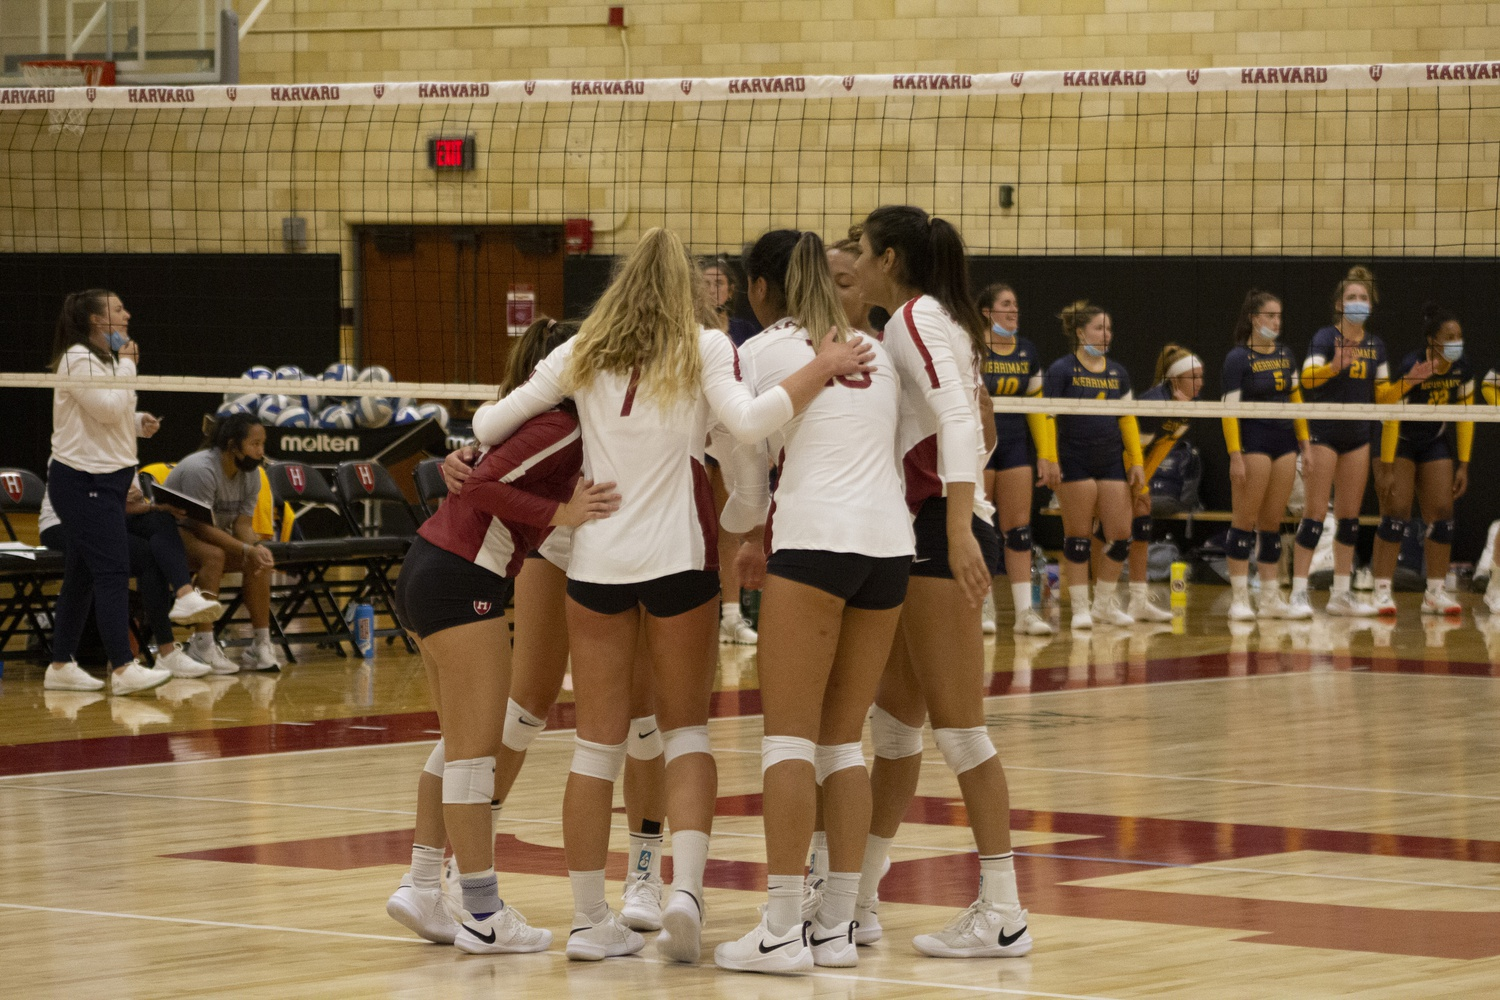 Harvard gathers between points during its Sept. 4 outing vs. Merrimack, a 3-1 win. The Crimson will look to return to winning form in the Nation's Capital this upcoming weekend after a trio of losses to Northeastern, Villanova, and Bryant.